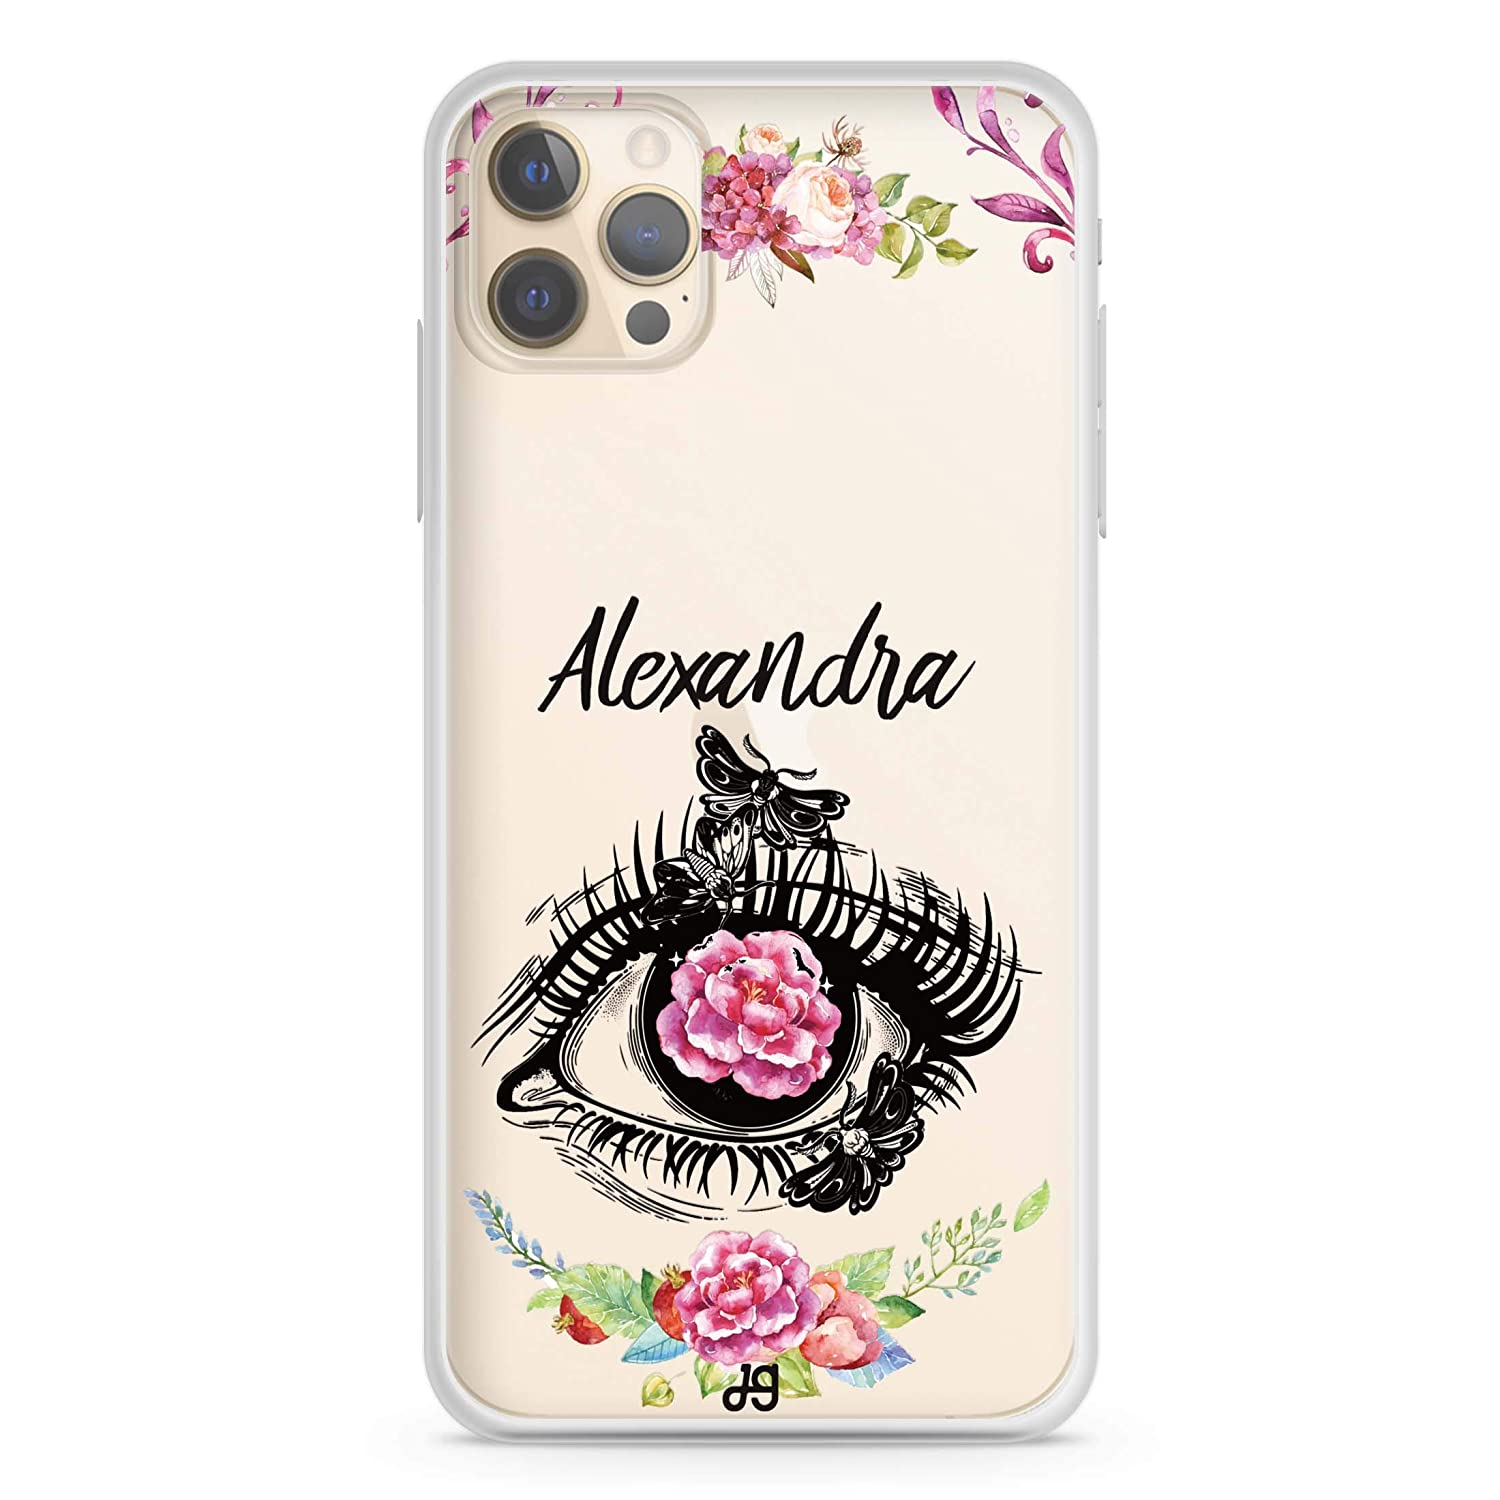 Flower in Direct store Eye iPhone 12 Pro iPho New life Max Case Soft Clear